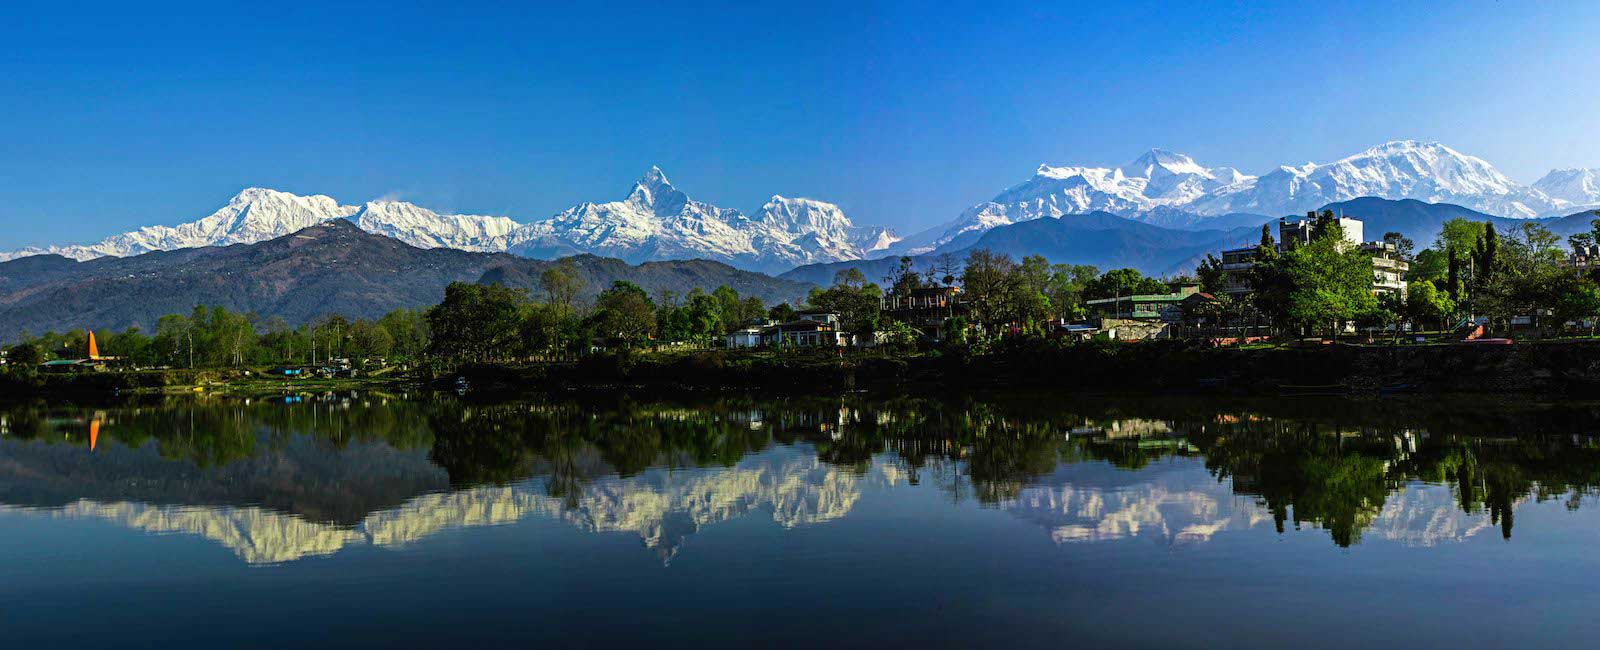 Nepal Tours by car and driver